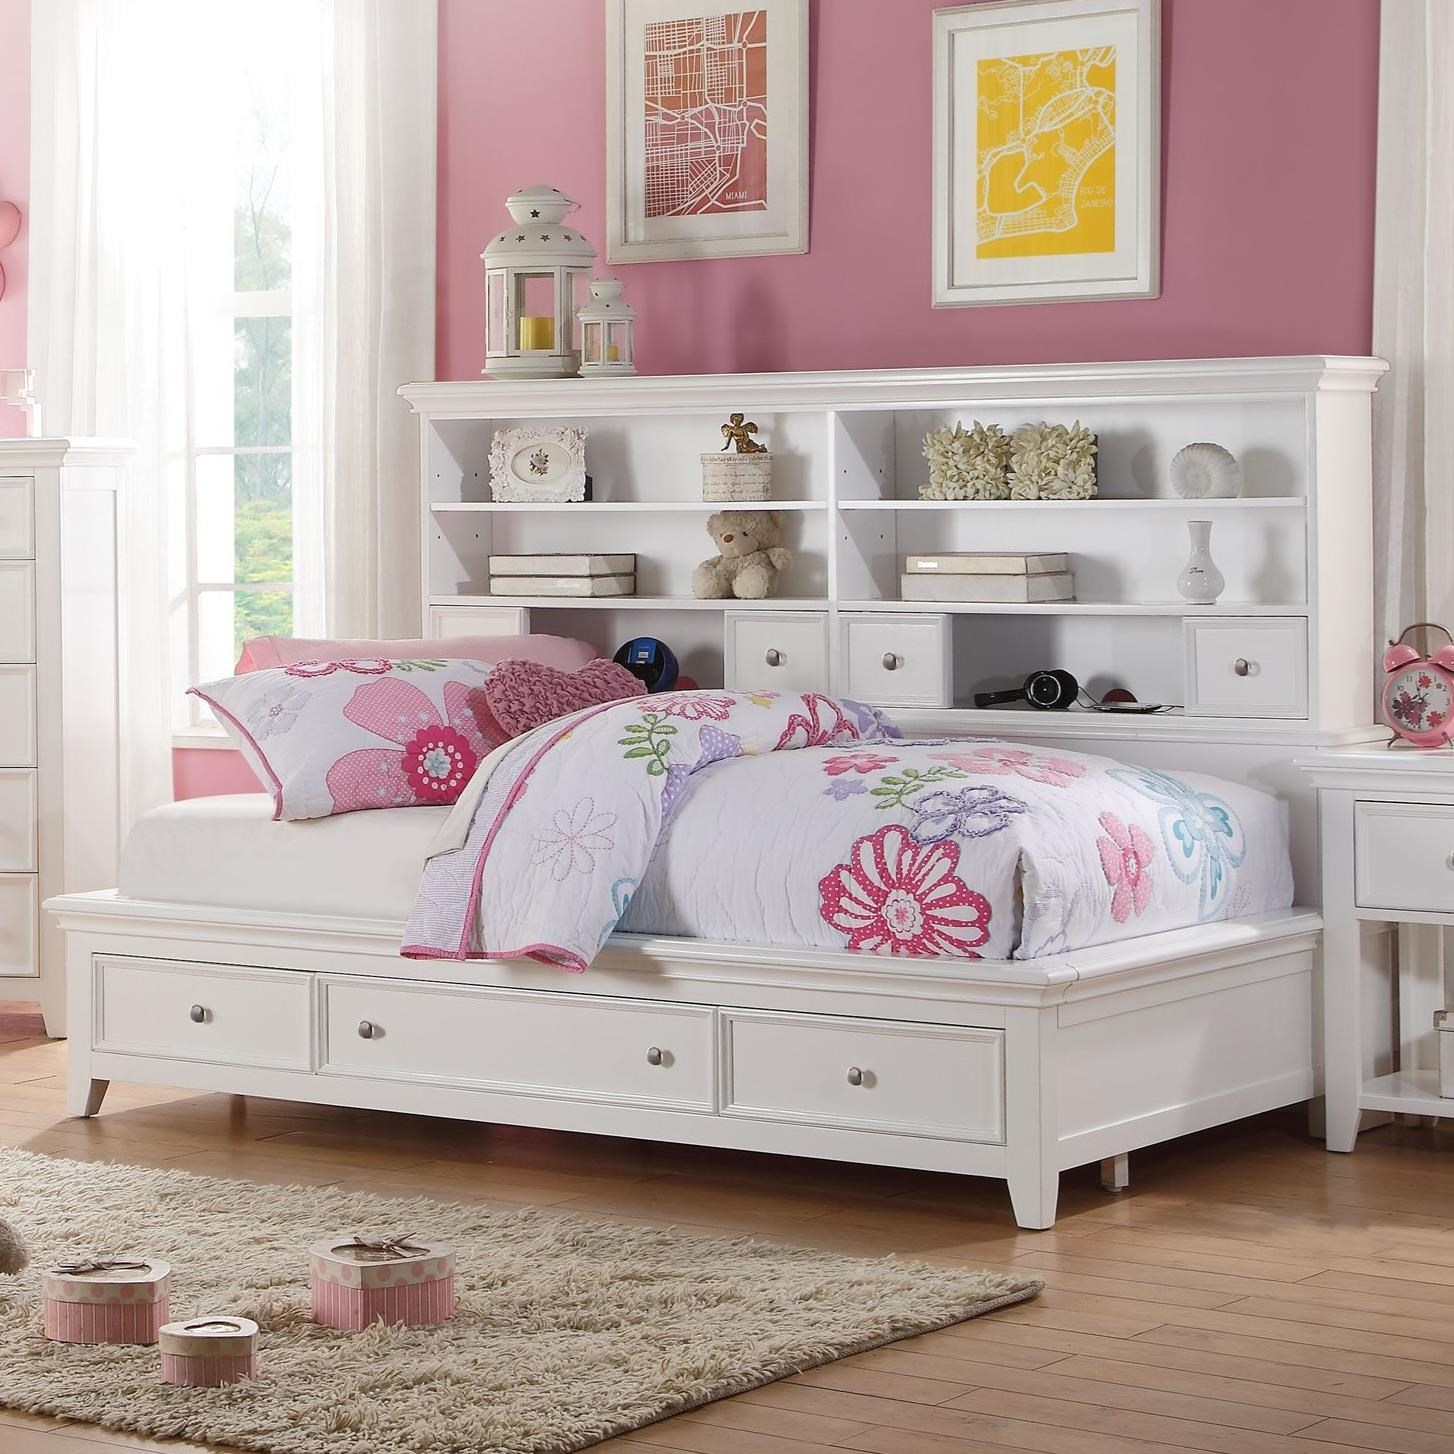 Acme Furniture Lacey 30595f Full Daybed With Bookcase And Footboard Storage Del Sol Furniture Daybeds